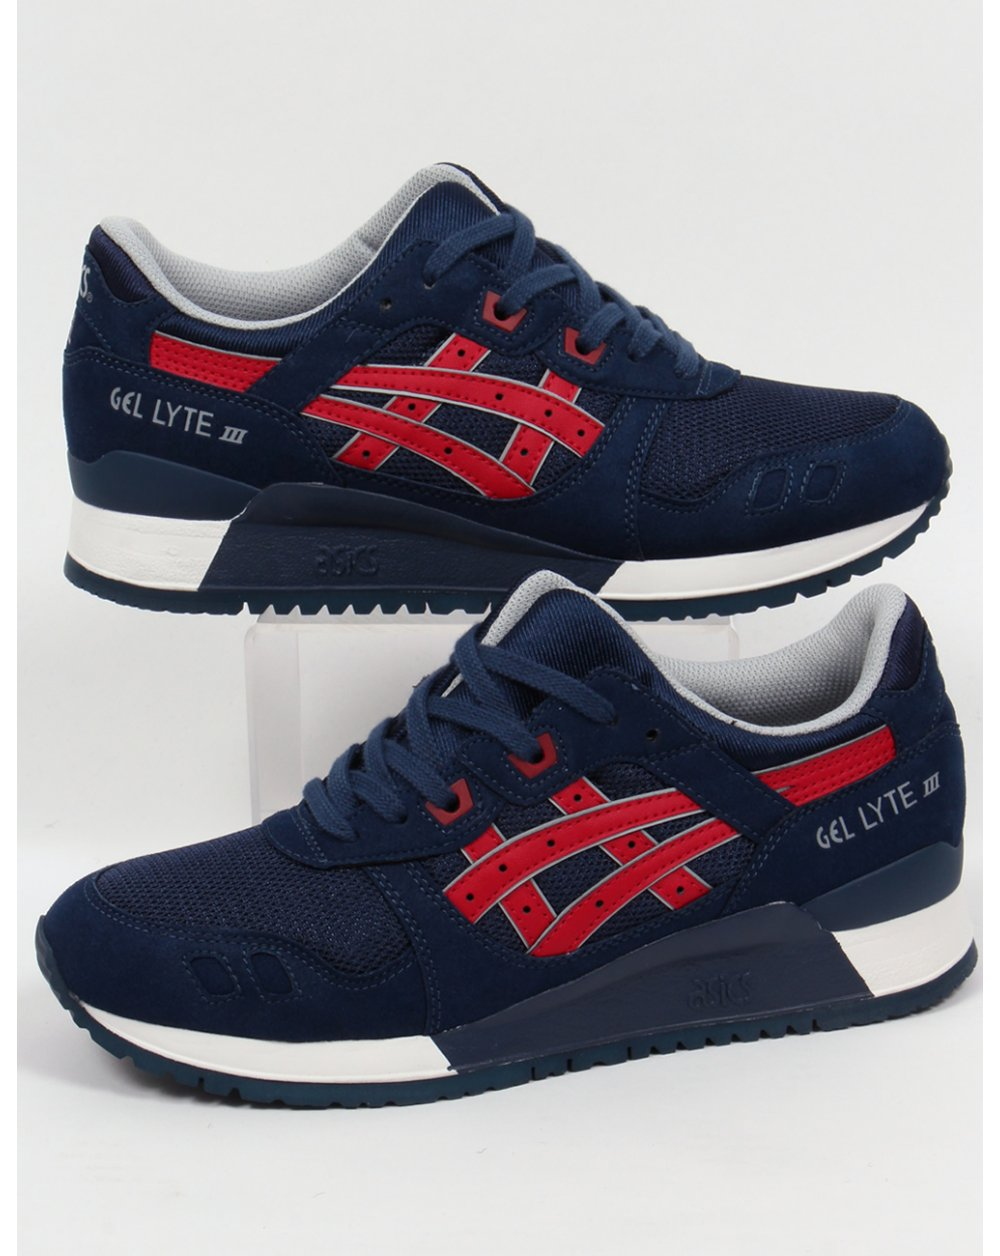 asics gel lyte iii trainers navy red 3 shoes runners sneakers. Black Bedroom Furniture Sets. Home Design Ideas